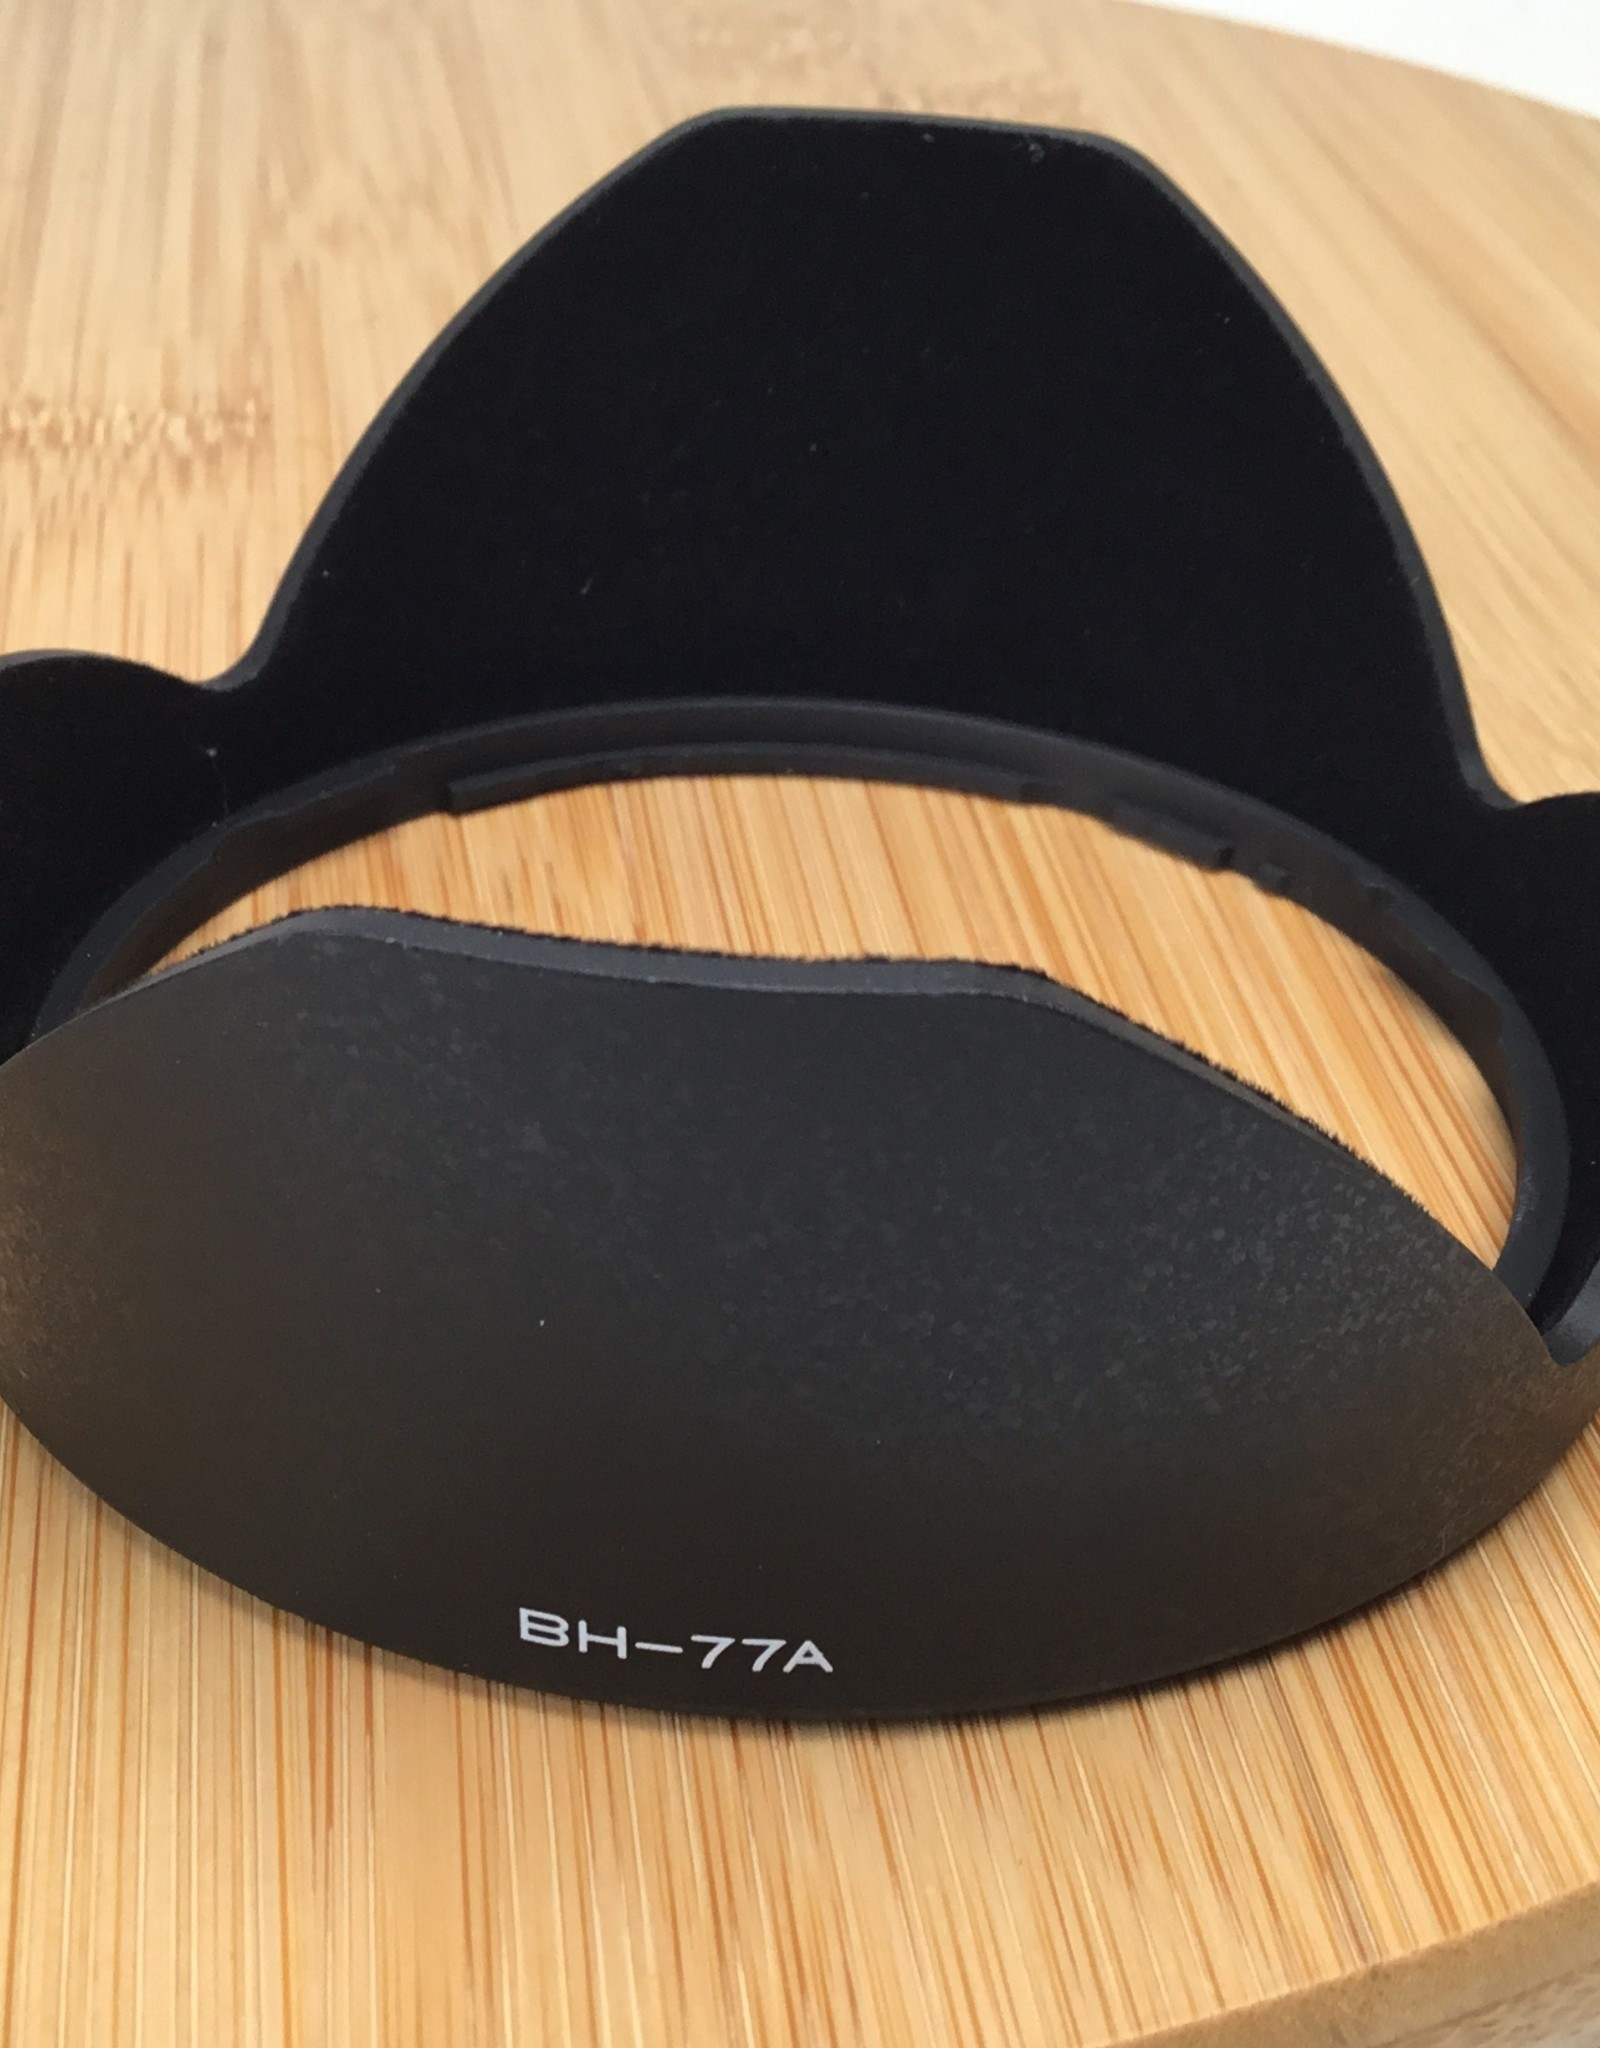 Tokina Tokina Lens Hood BH77A for 11-16mm in Box Used LN